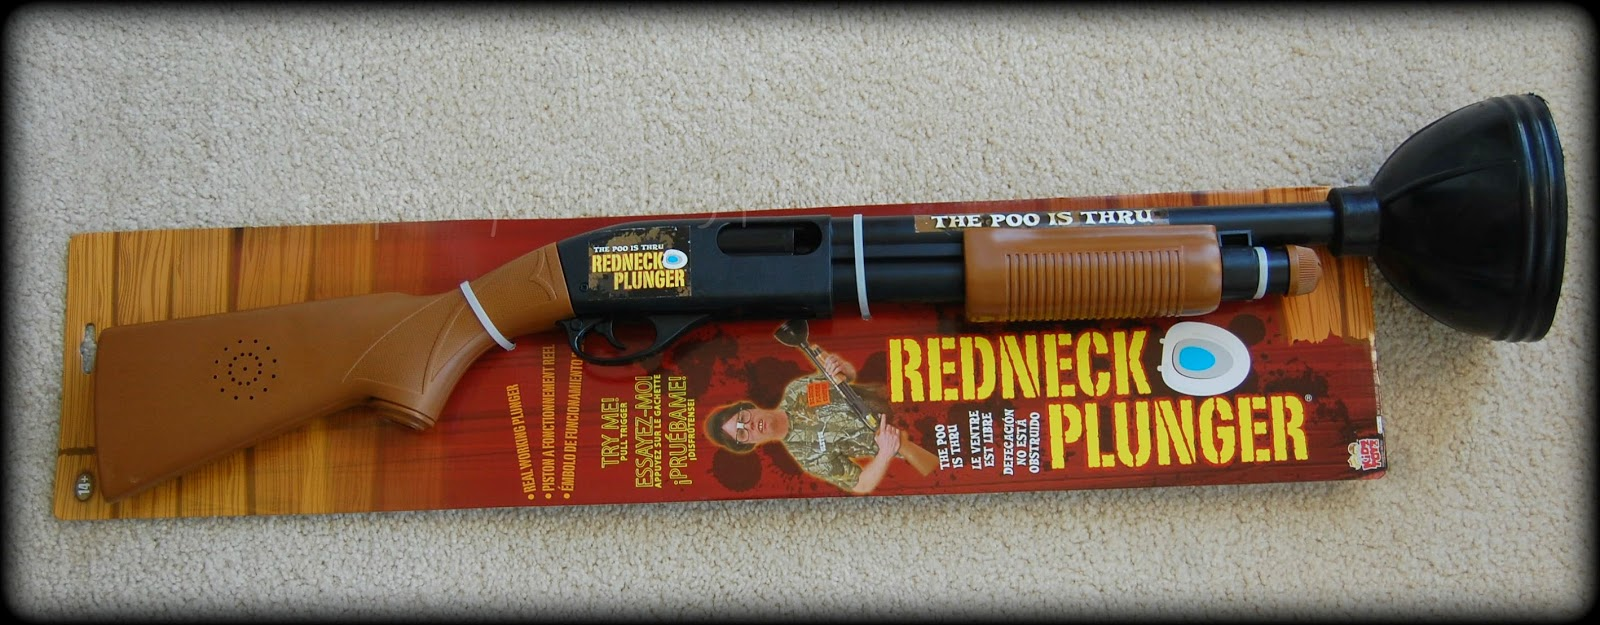 Temporary Waffle: The Redneck Plunger - The Perfect Funny Gift!